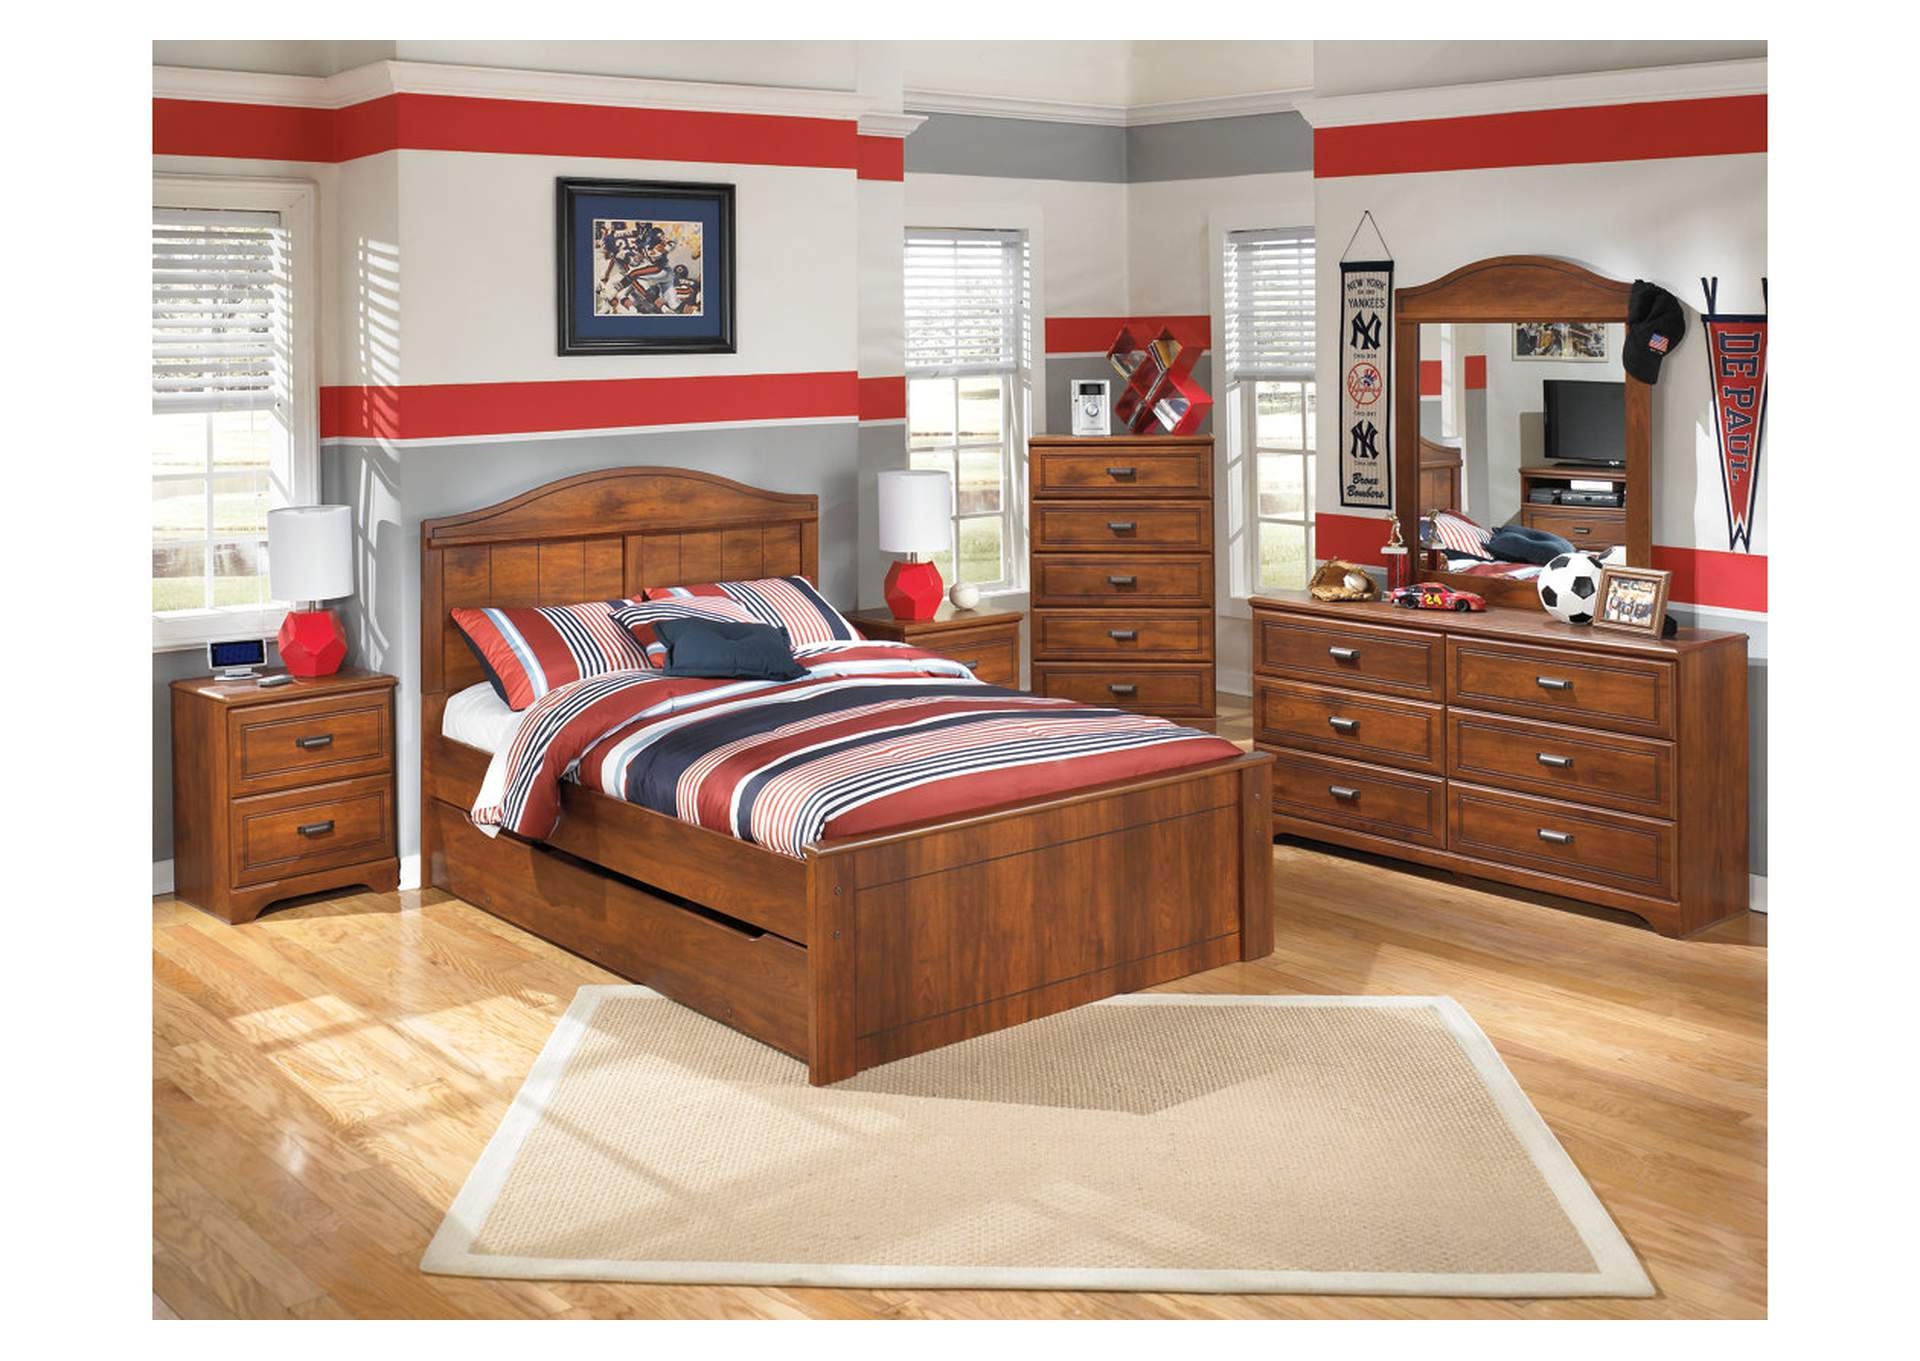 Barchan Full Panel Bed w/Trundle, Dresser & Mirror,Signature Design By Ashley